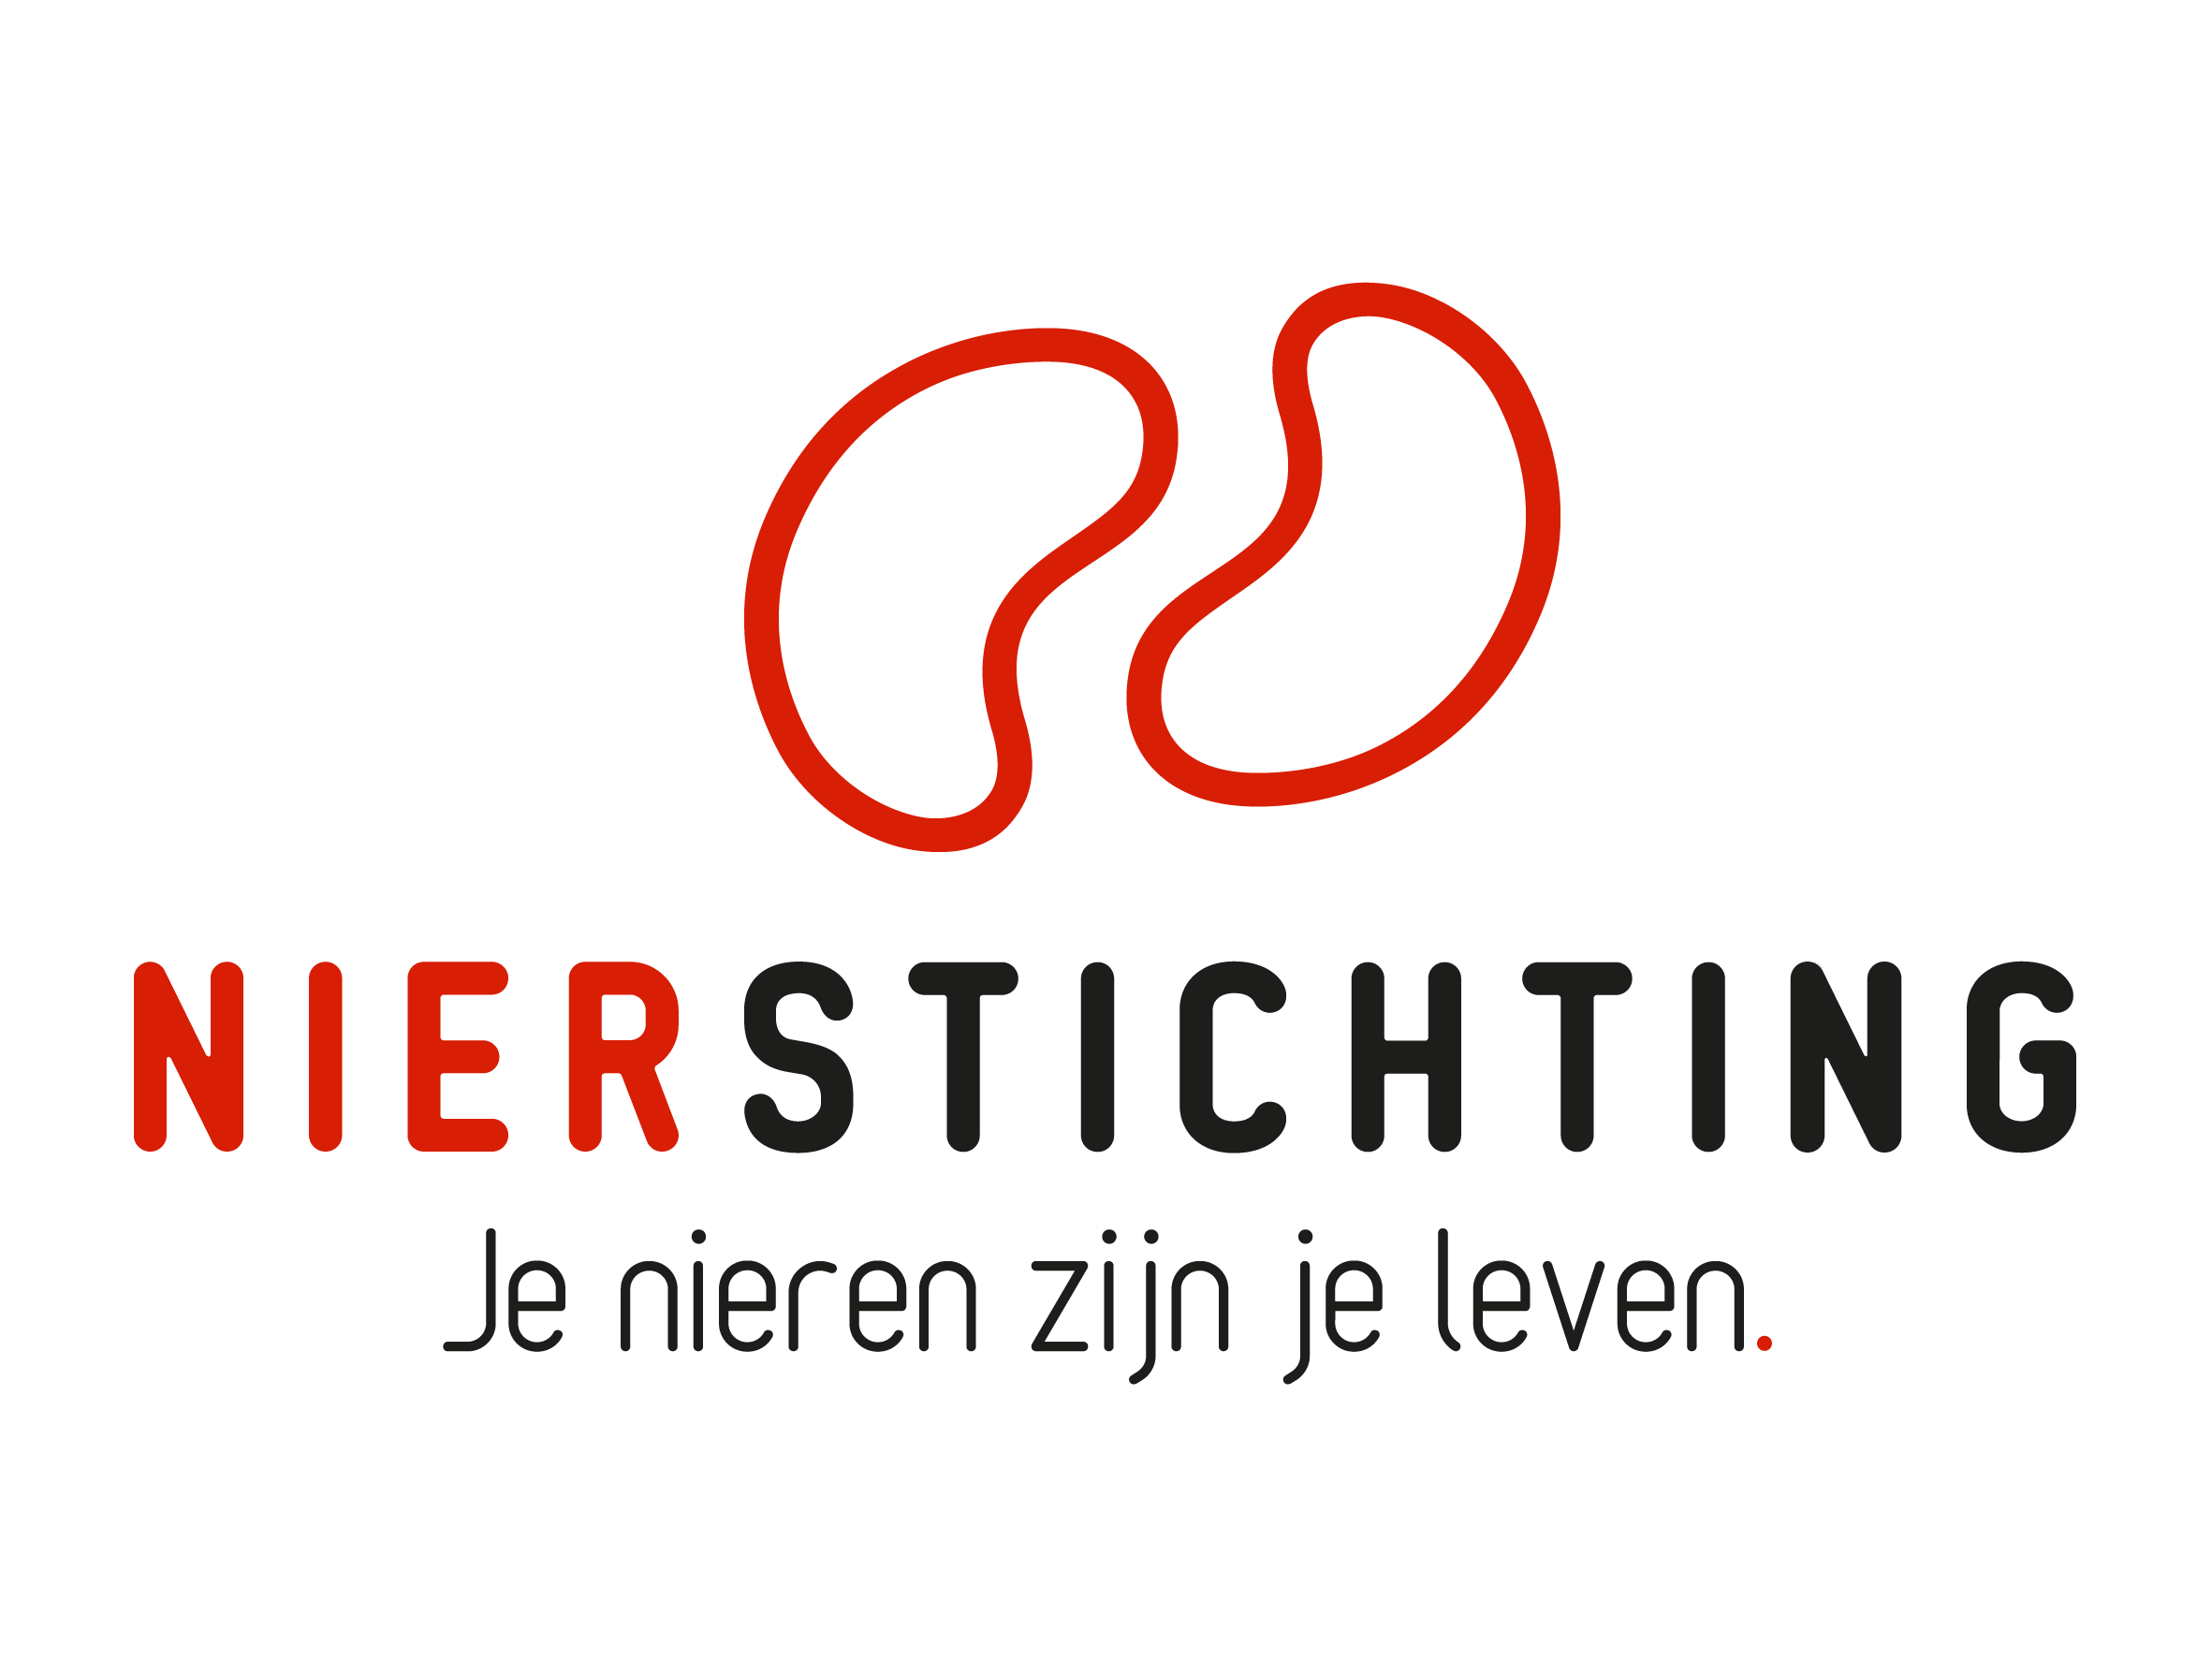 Nierstichting